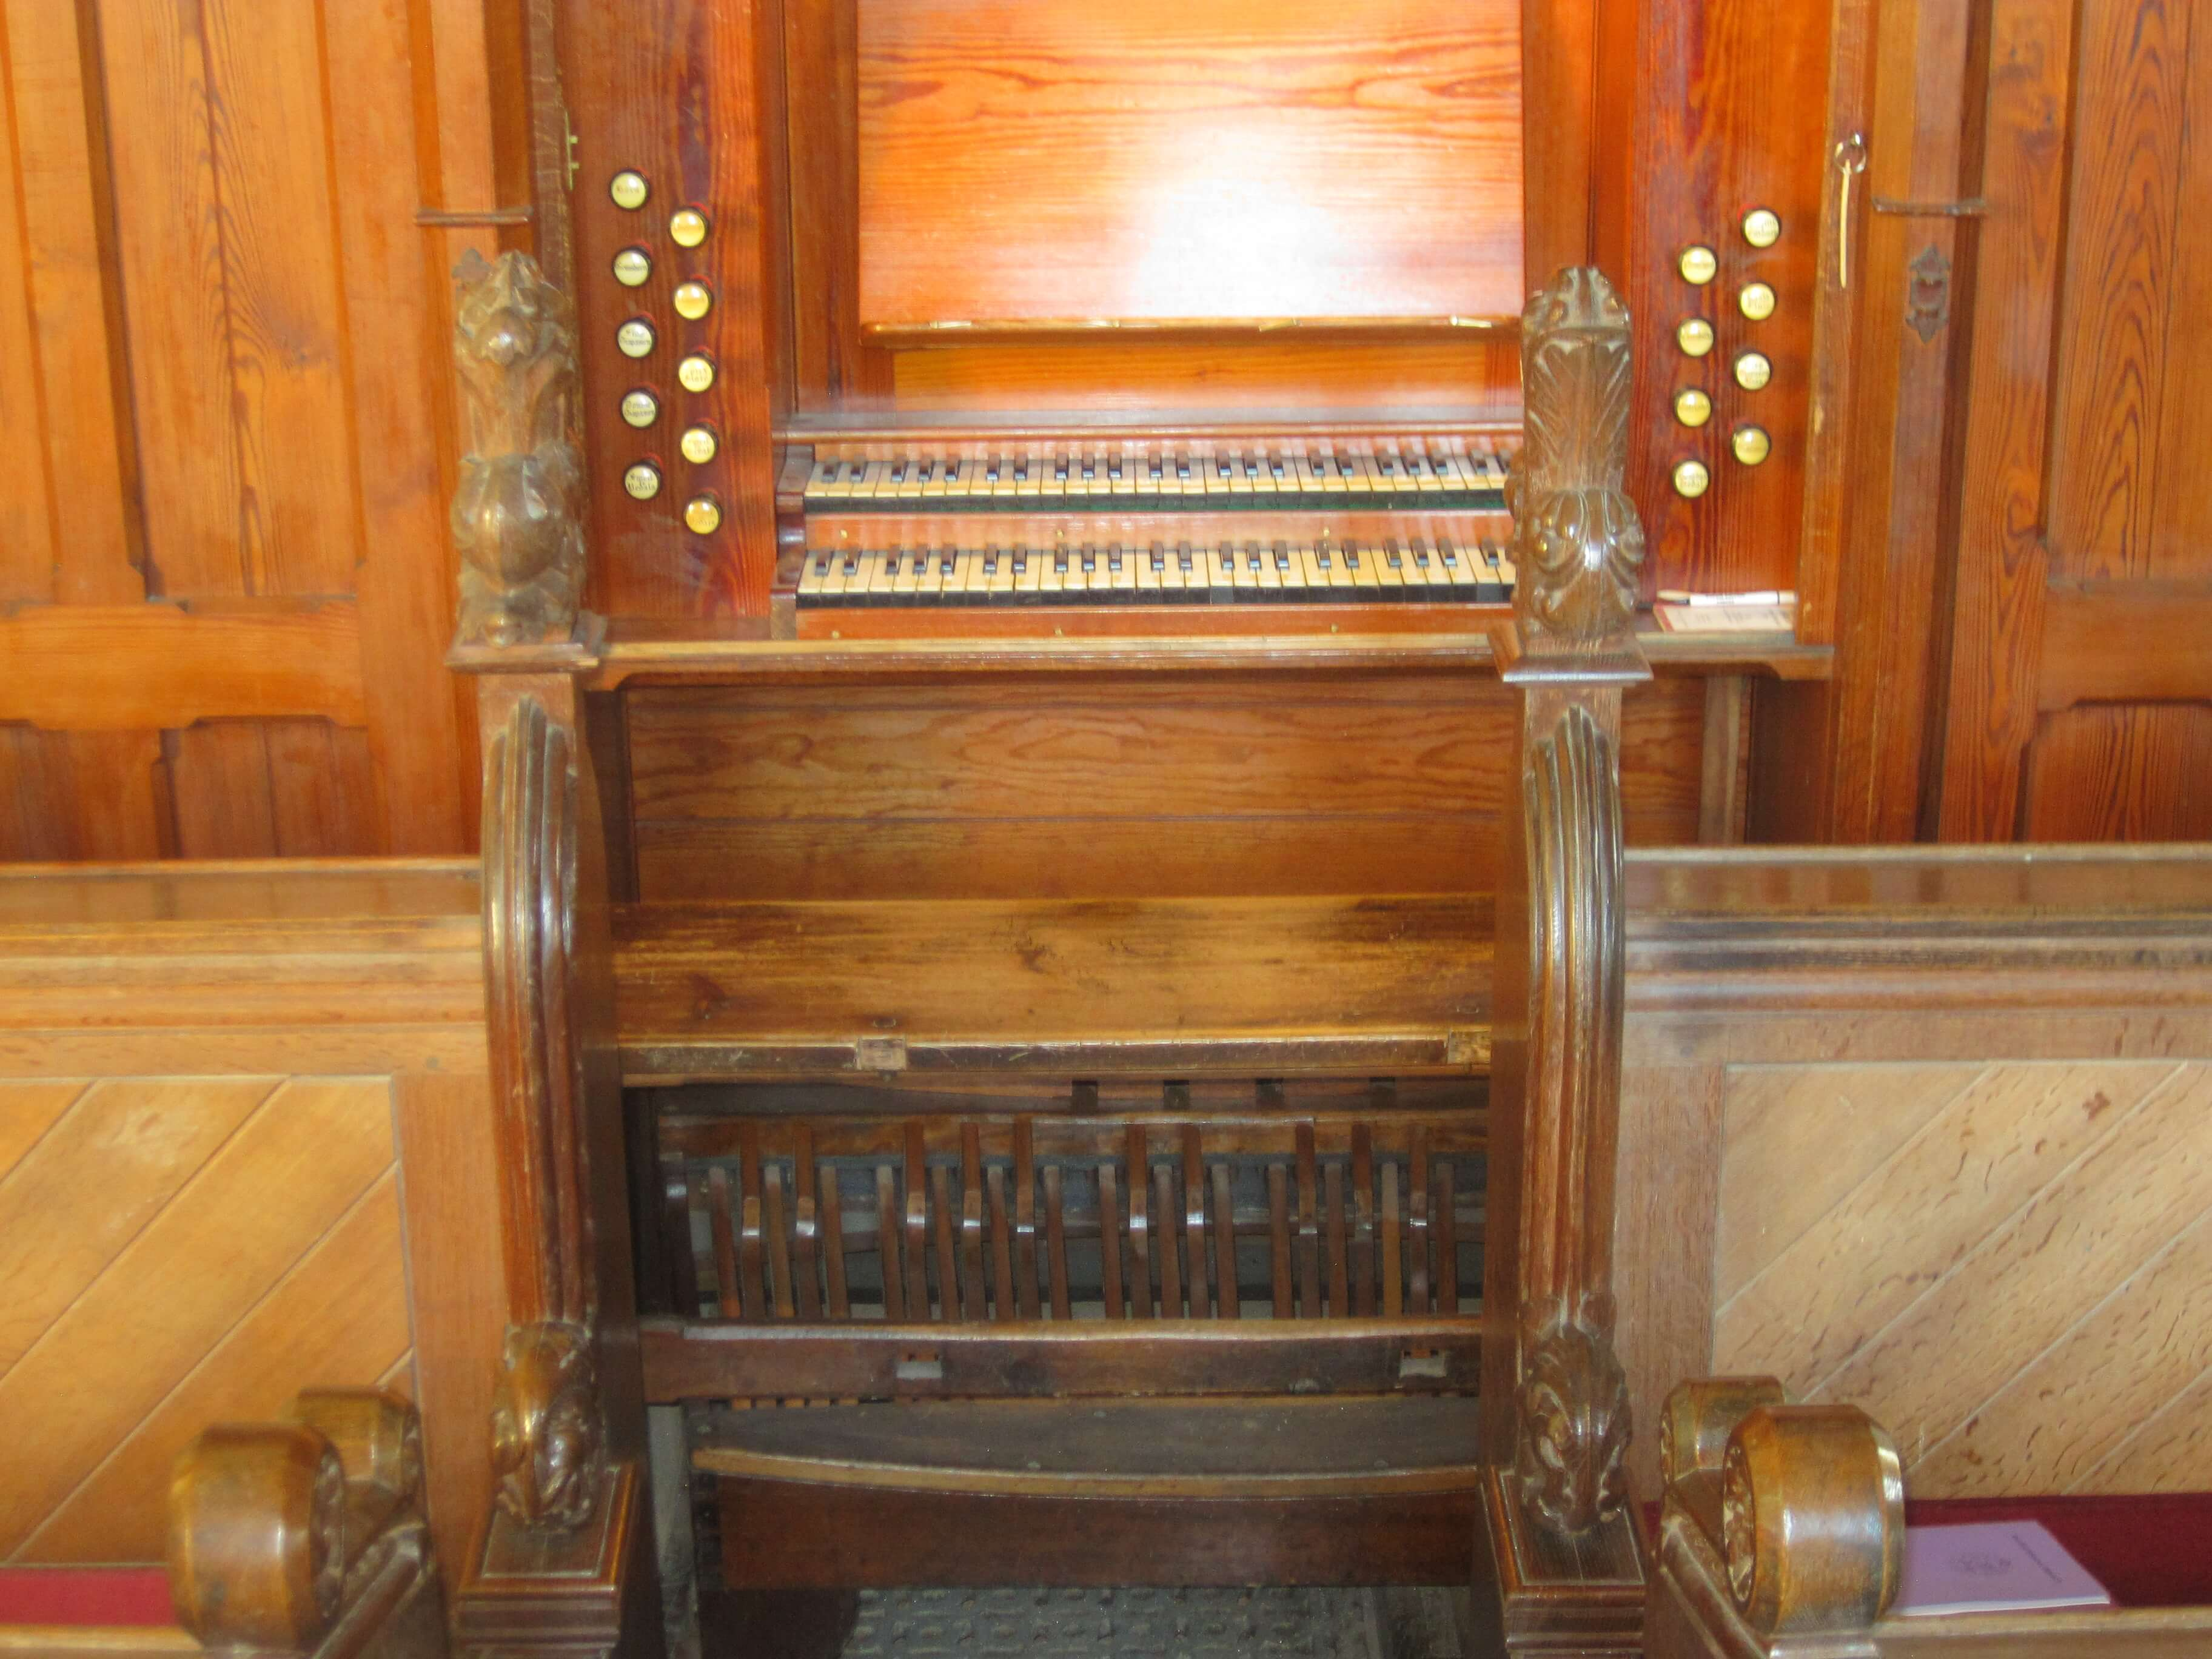 The Organ which Moved